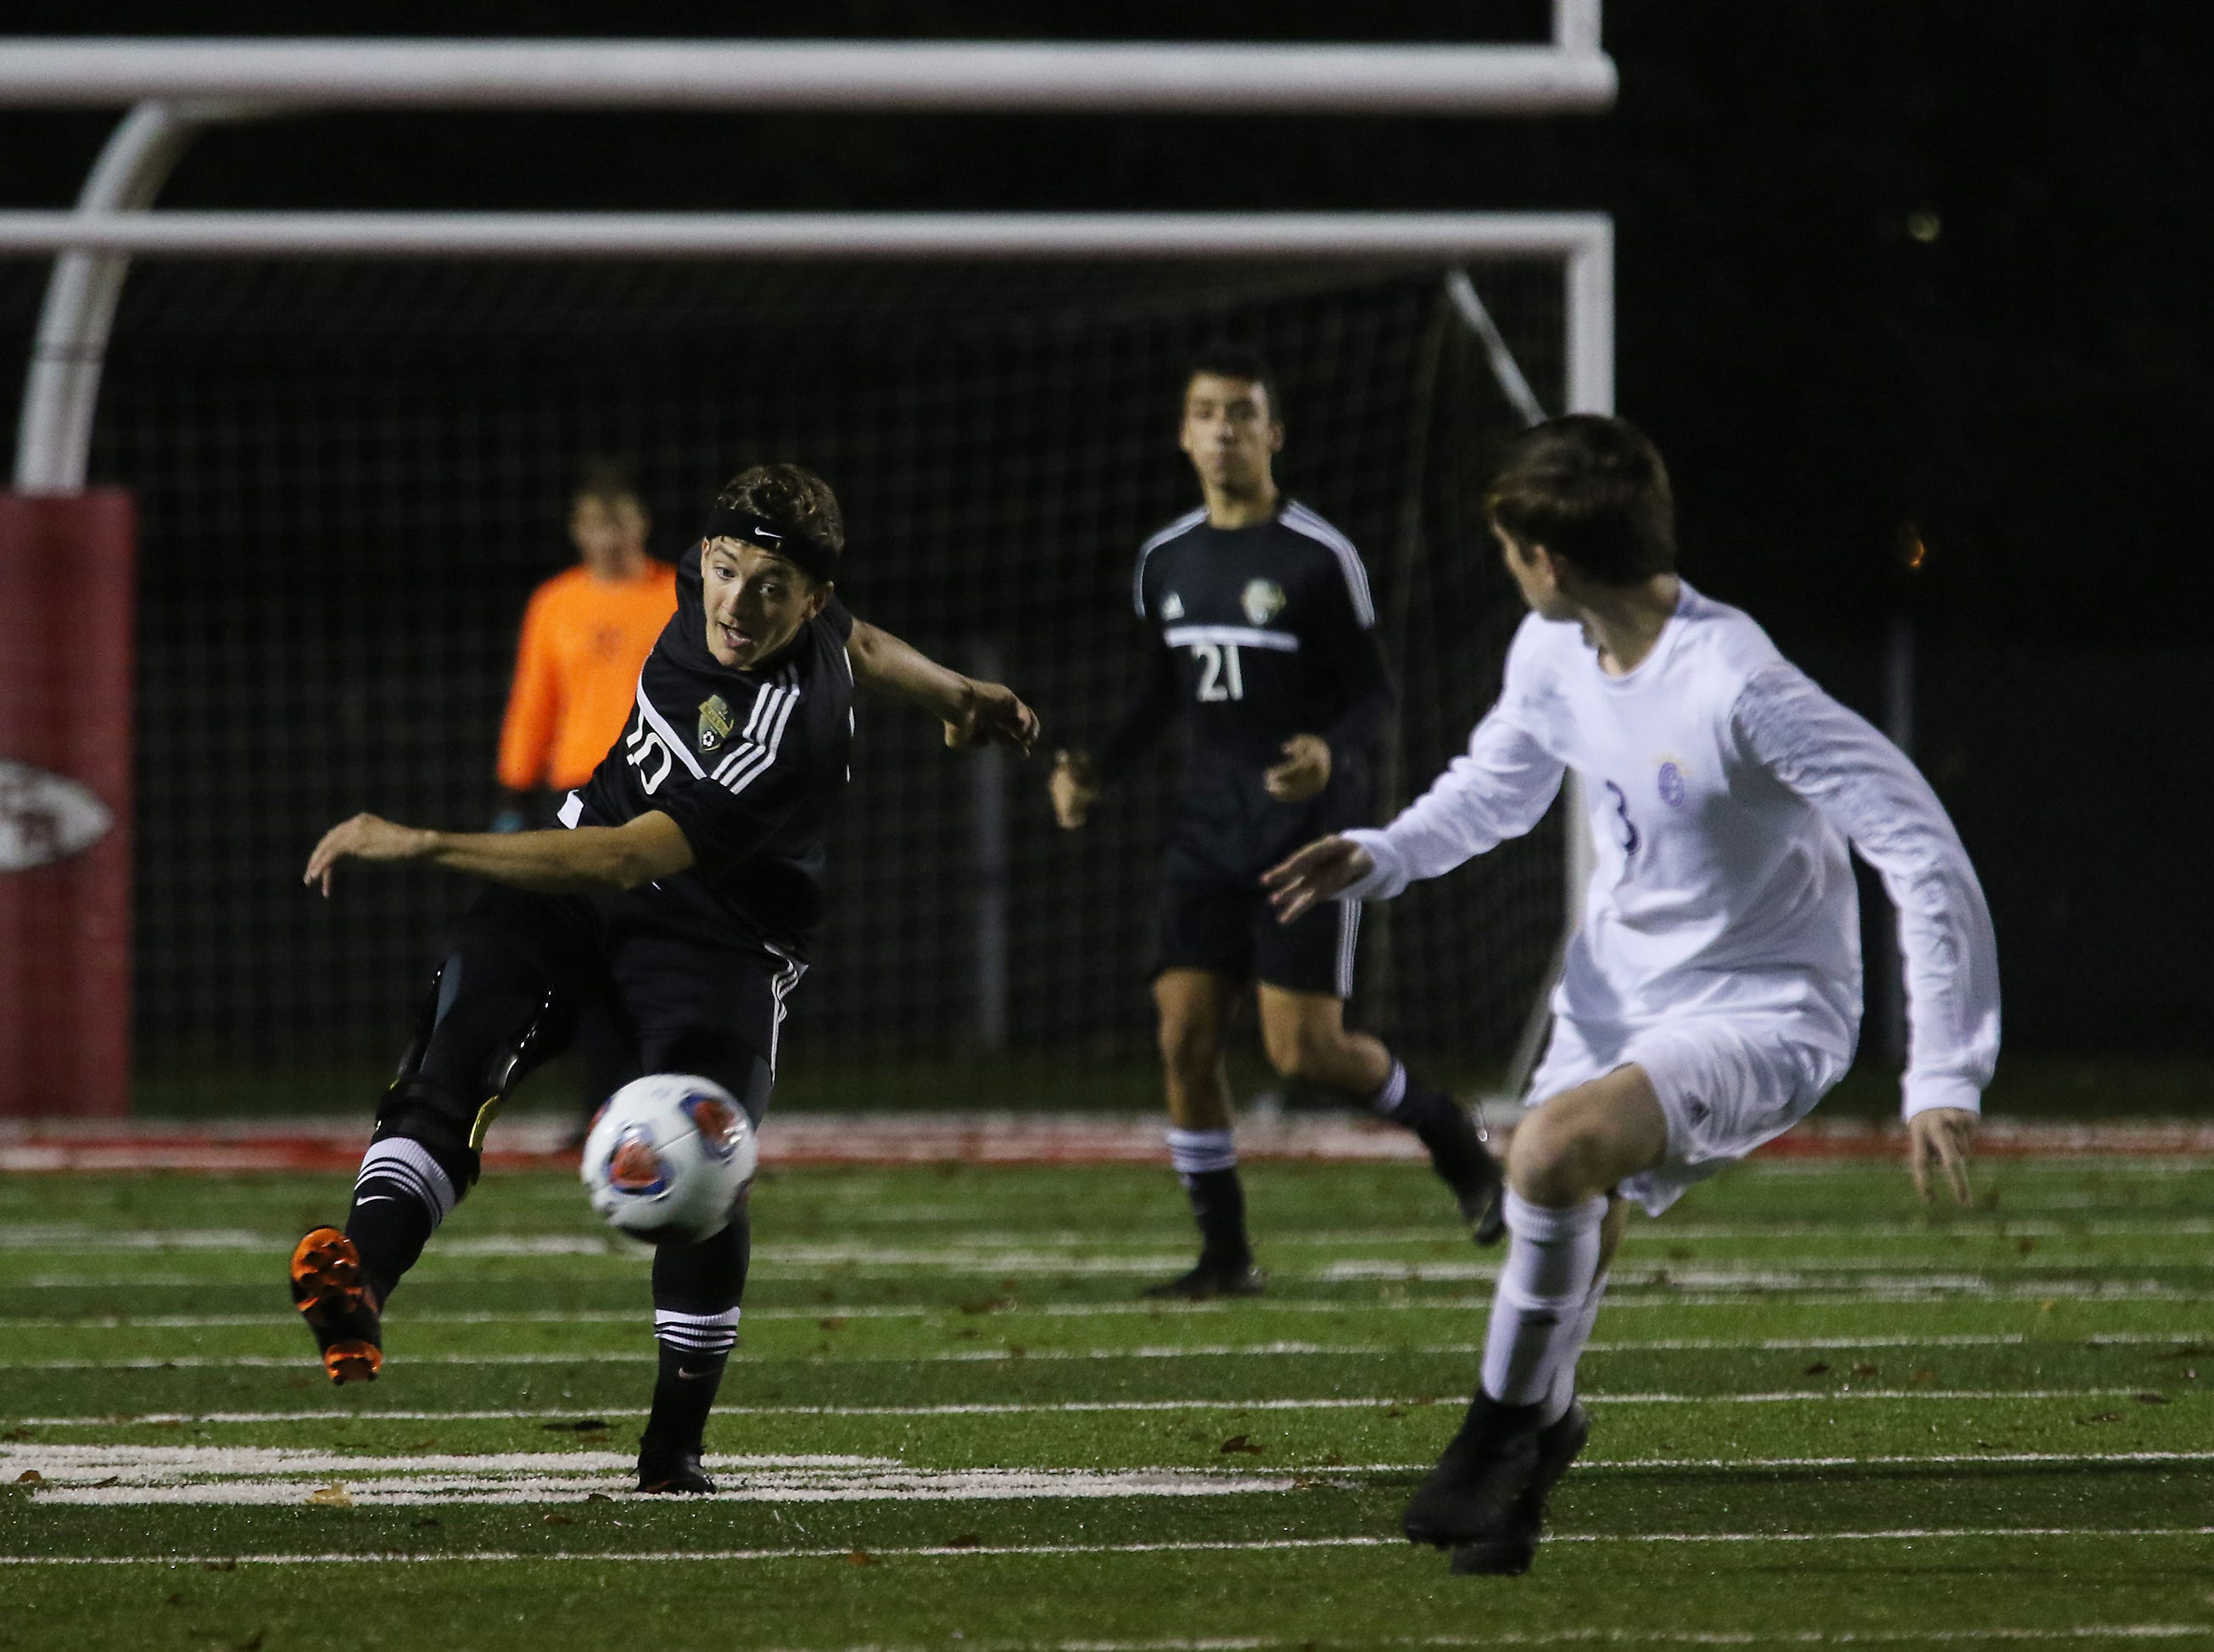 River View's Andrew Martin passes the ball against DeSales.